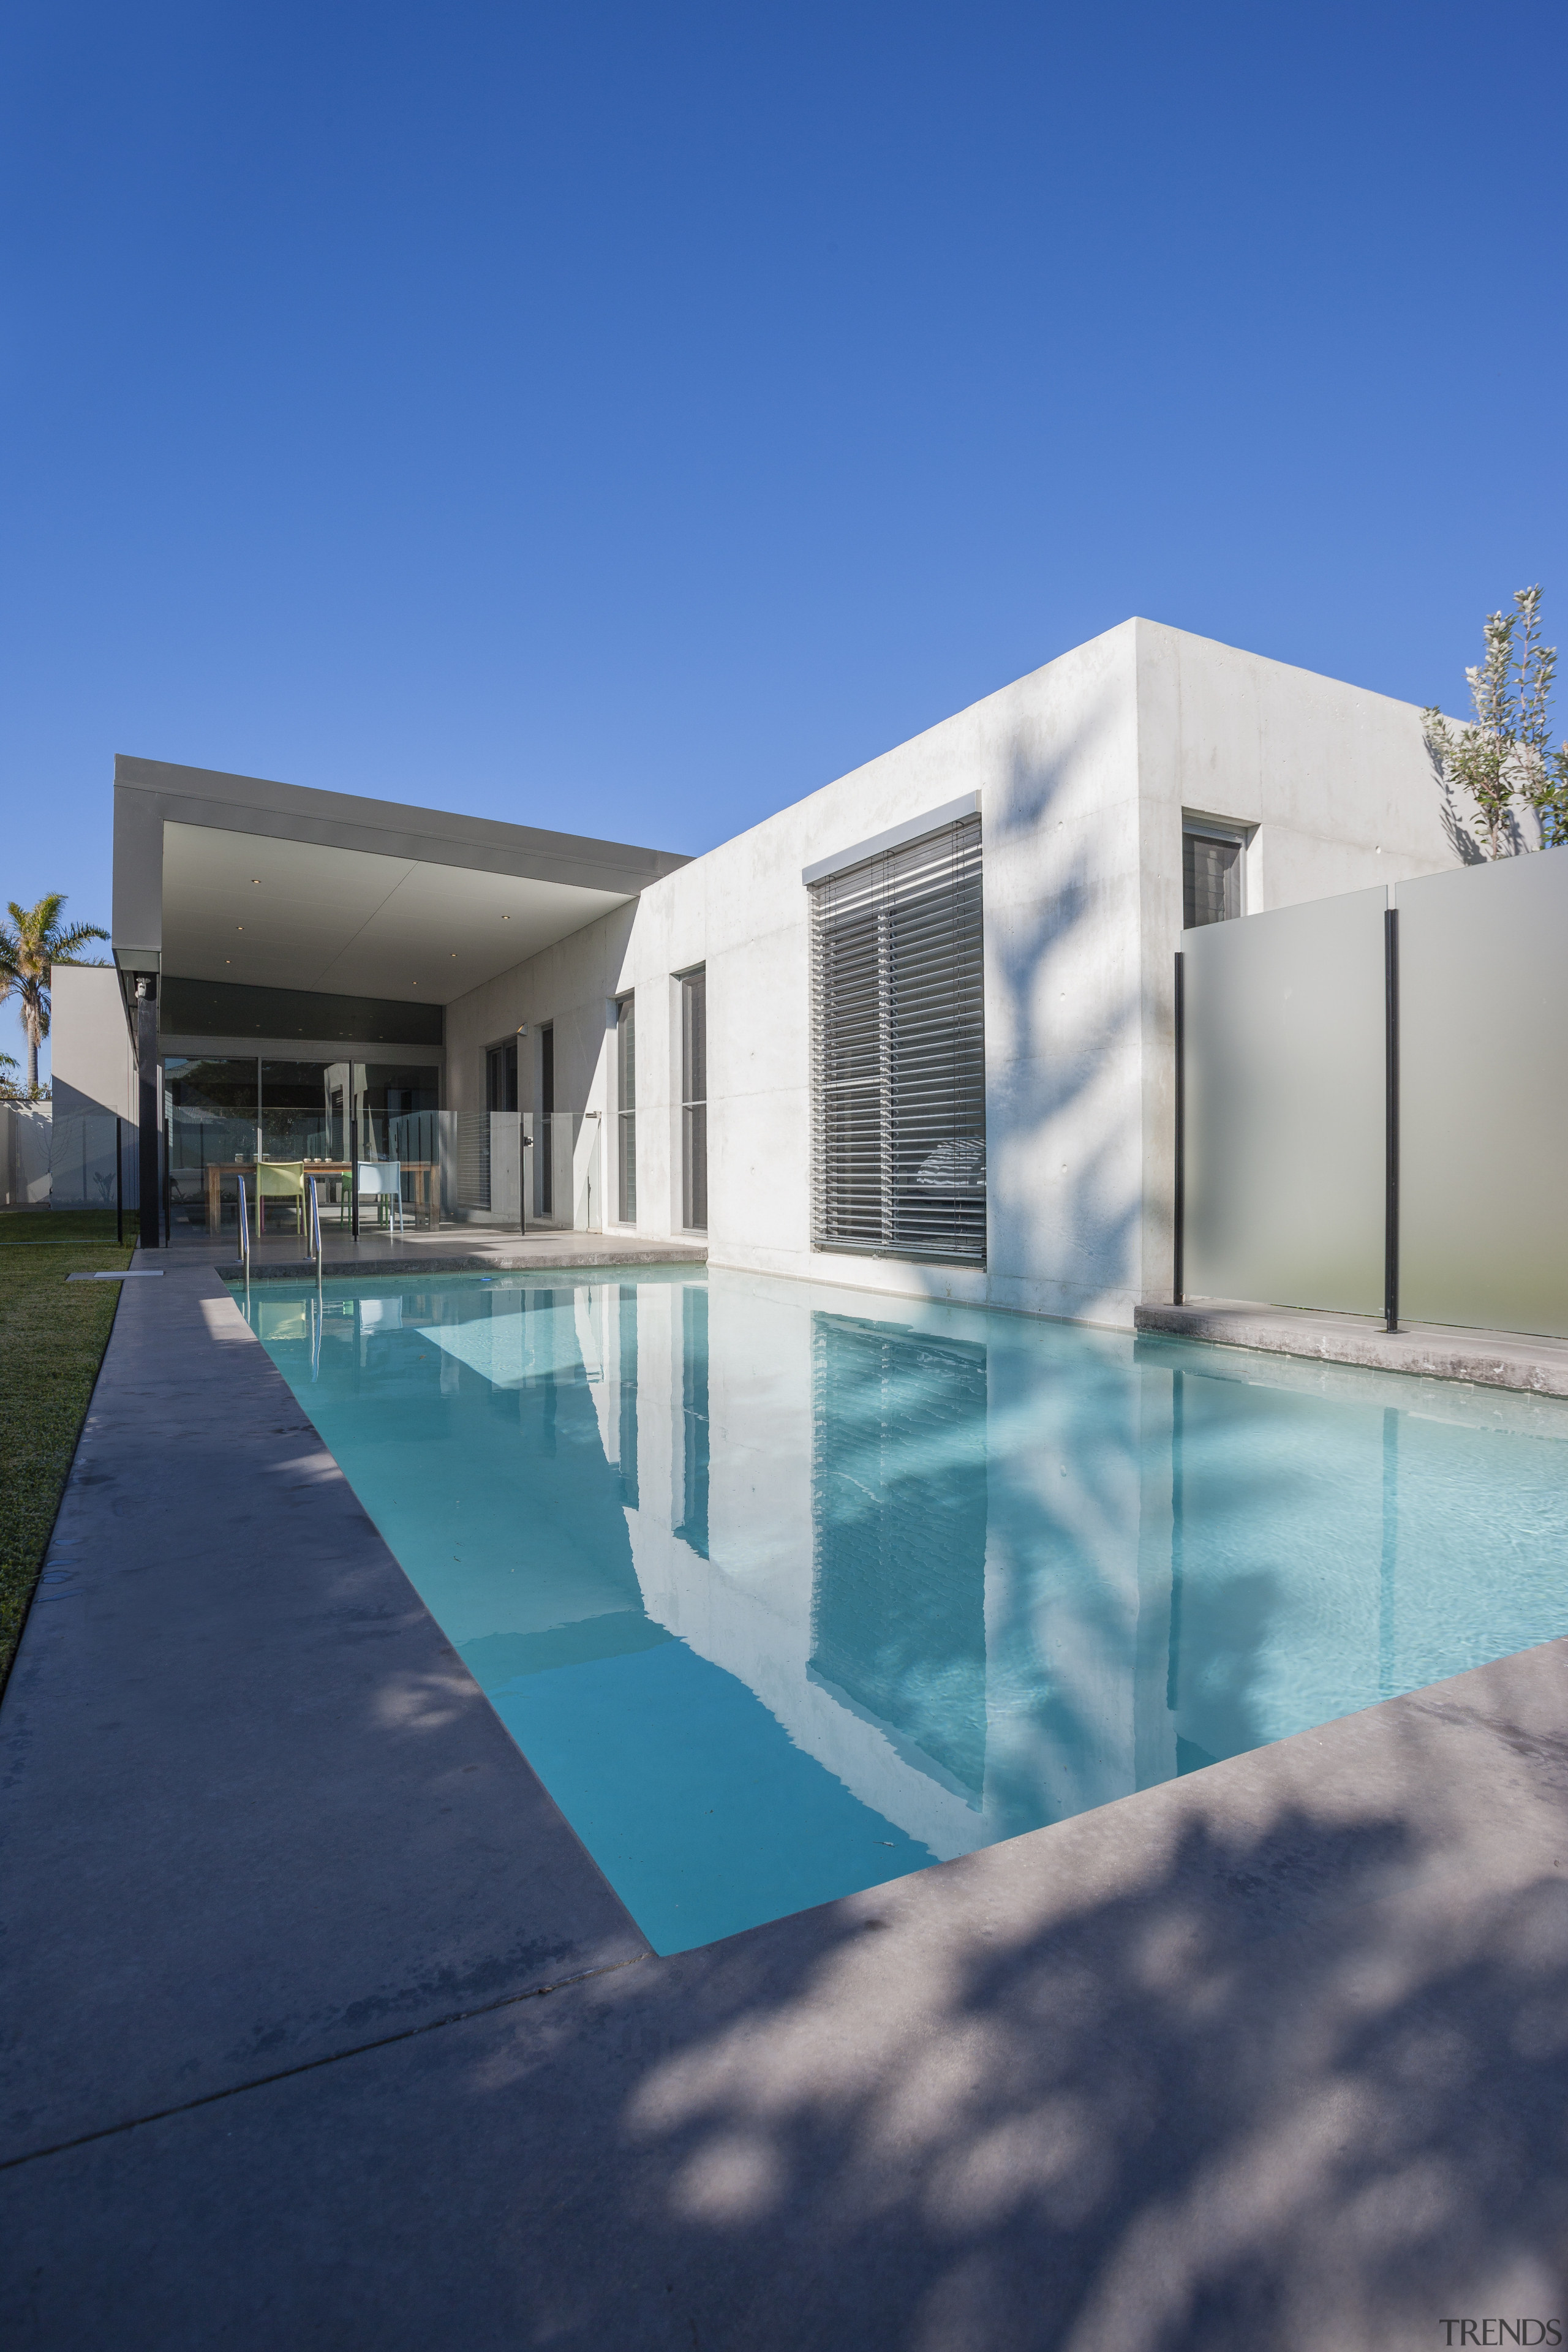 Shot of house from poolside. - Shot of architecture, elevation, estate, facade, home, house, leisure centre, property, real estate, reflection, sky, swimming pool, villa, water, blue, teal